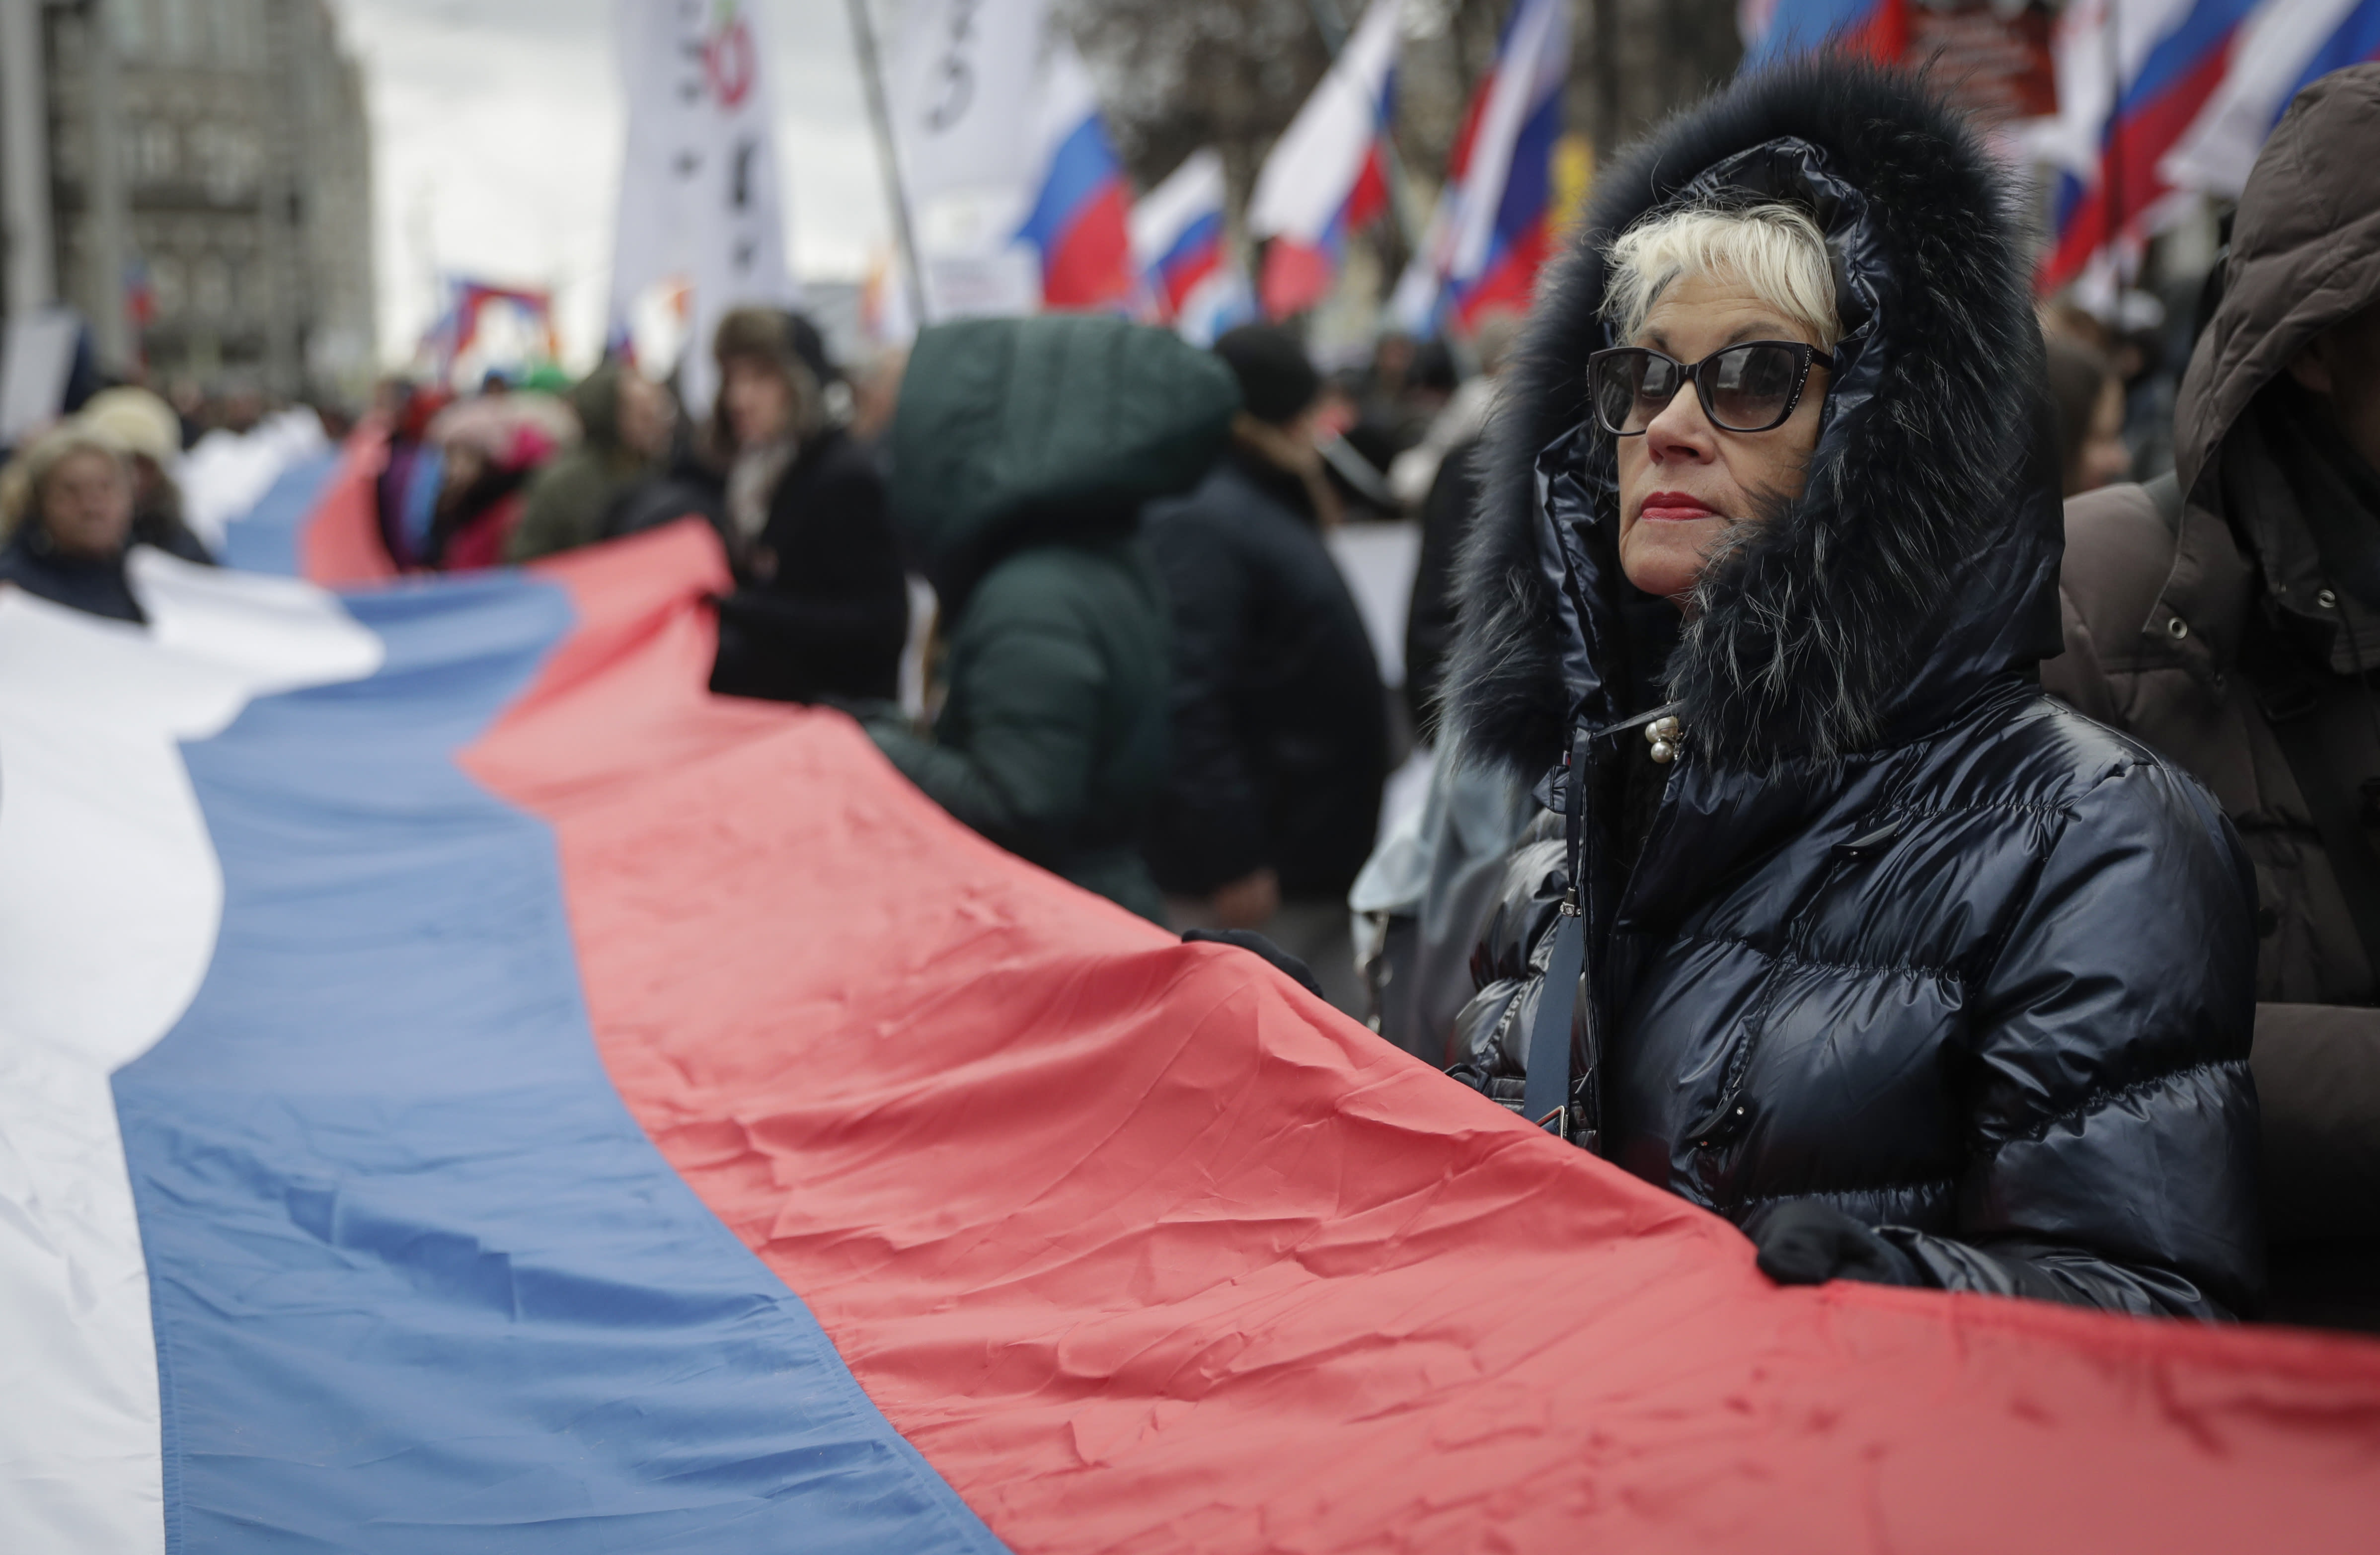 Demonstrators carry a Russian state flag as they gather to commemorate the anniversary of the death of opposition leader Boris Nemtsov in Moscow, Russia, Saturday, Feb. 29, 2020. Nemtsov, a charismatic Russian opposition leader and sharp critic of President Vladimir Putin, was gunned down on Feb. 27, 2015 near the Kremlin in Moscow, Russia. (AP Photo/Pavel Golovkin)